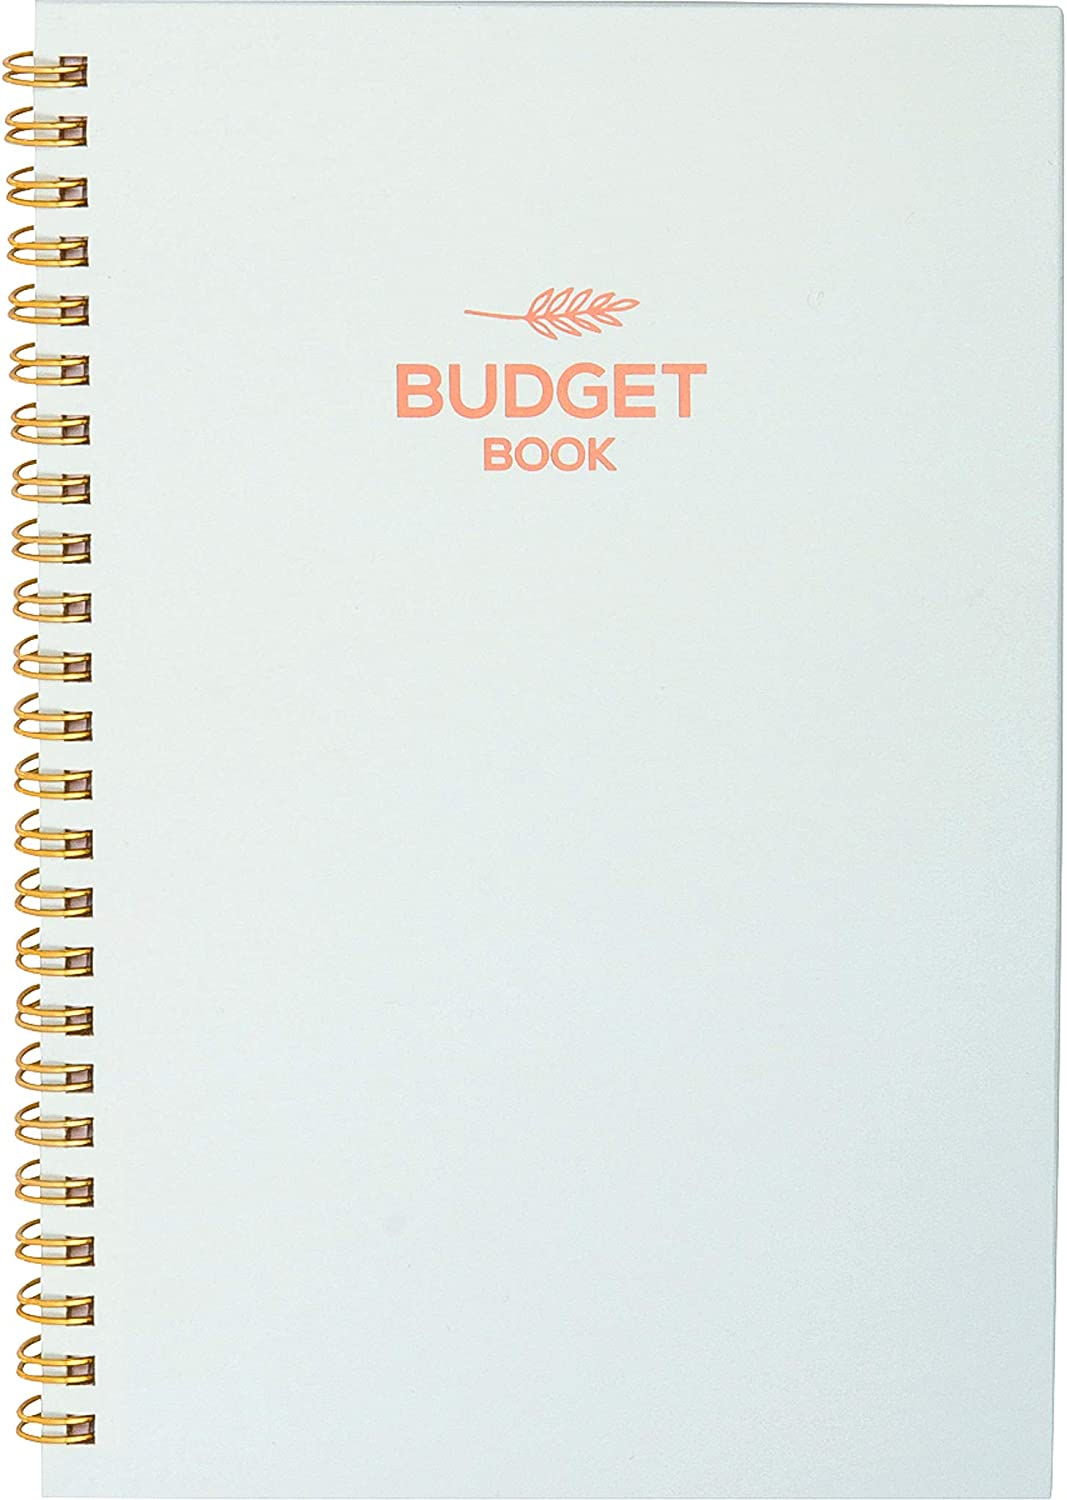 Monthly & Weekly Budget Planner Organizer – Financial Budgeting Book & Expense Tracker – Control Your Finances - Undated Start Anytime, 12 Months